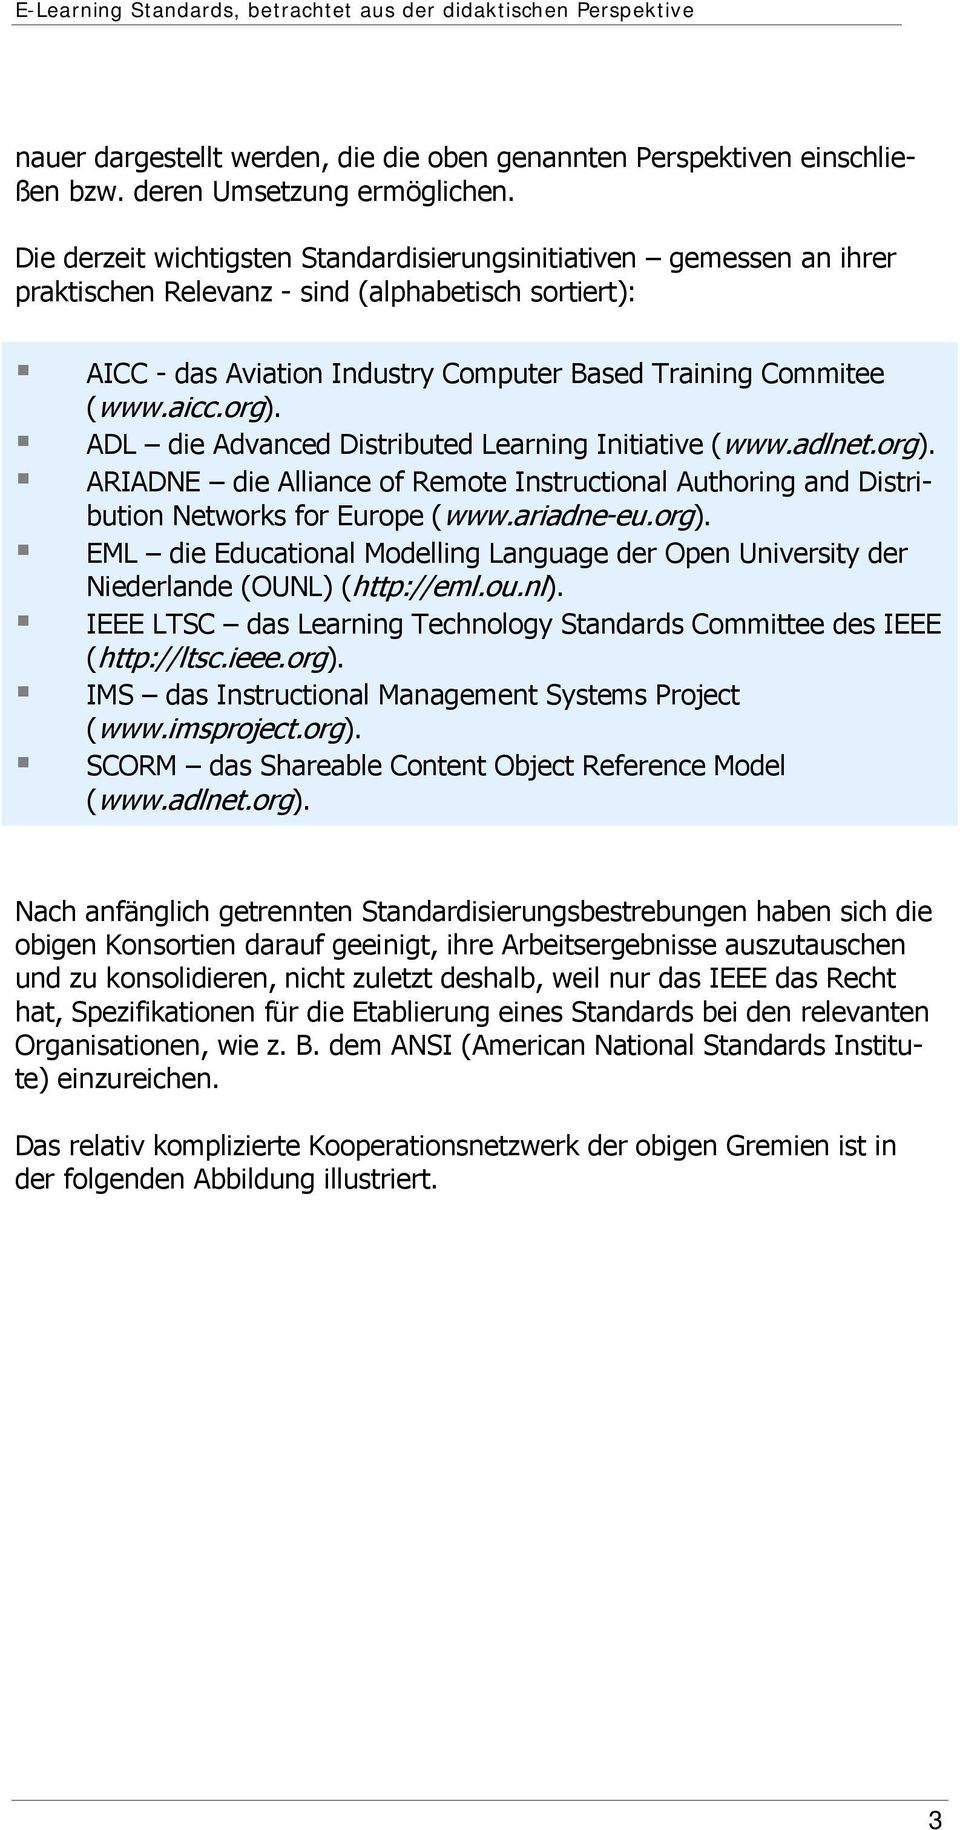 org). ADL die Advanced Distributed Learning Initiative (www.adlnet.org). ARIADNE die Alliance of Remote Instructional Authoring and Distribution Networks for Europe (www.ariadne-eu.org). EML die Educational Modelling Language der Open University der Niederlande (OUNL) (http://eml.